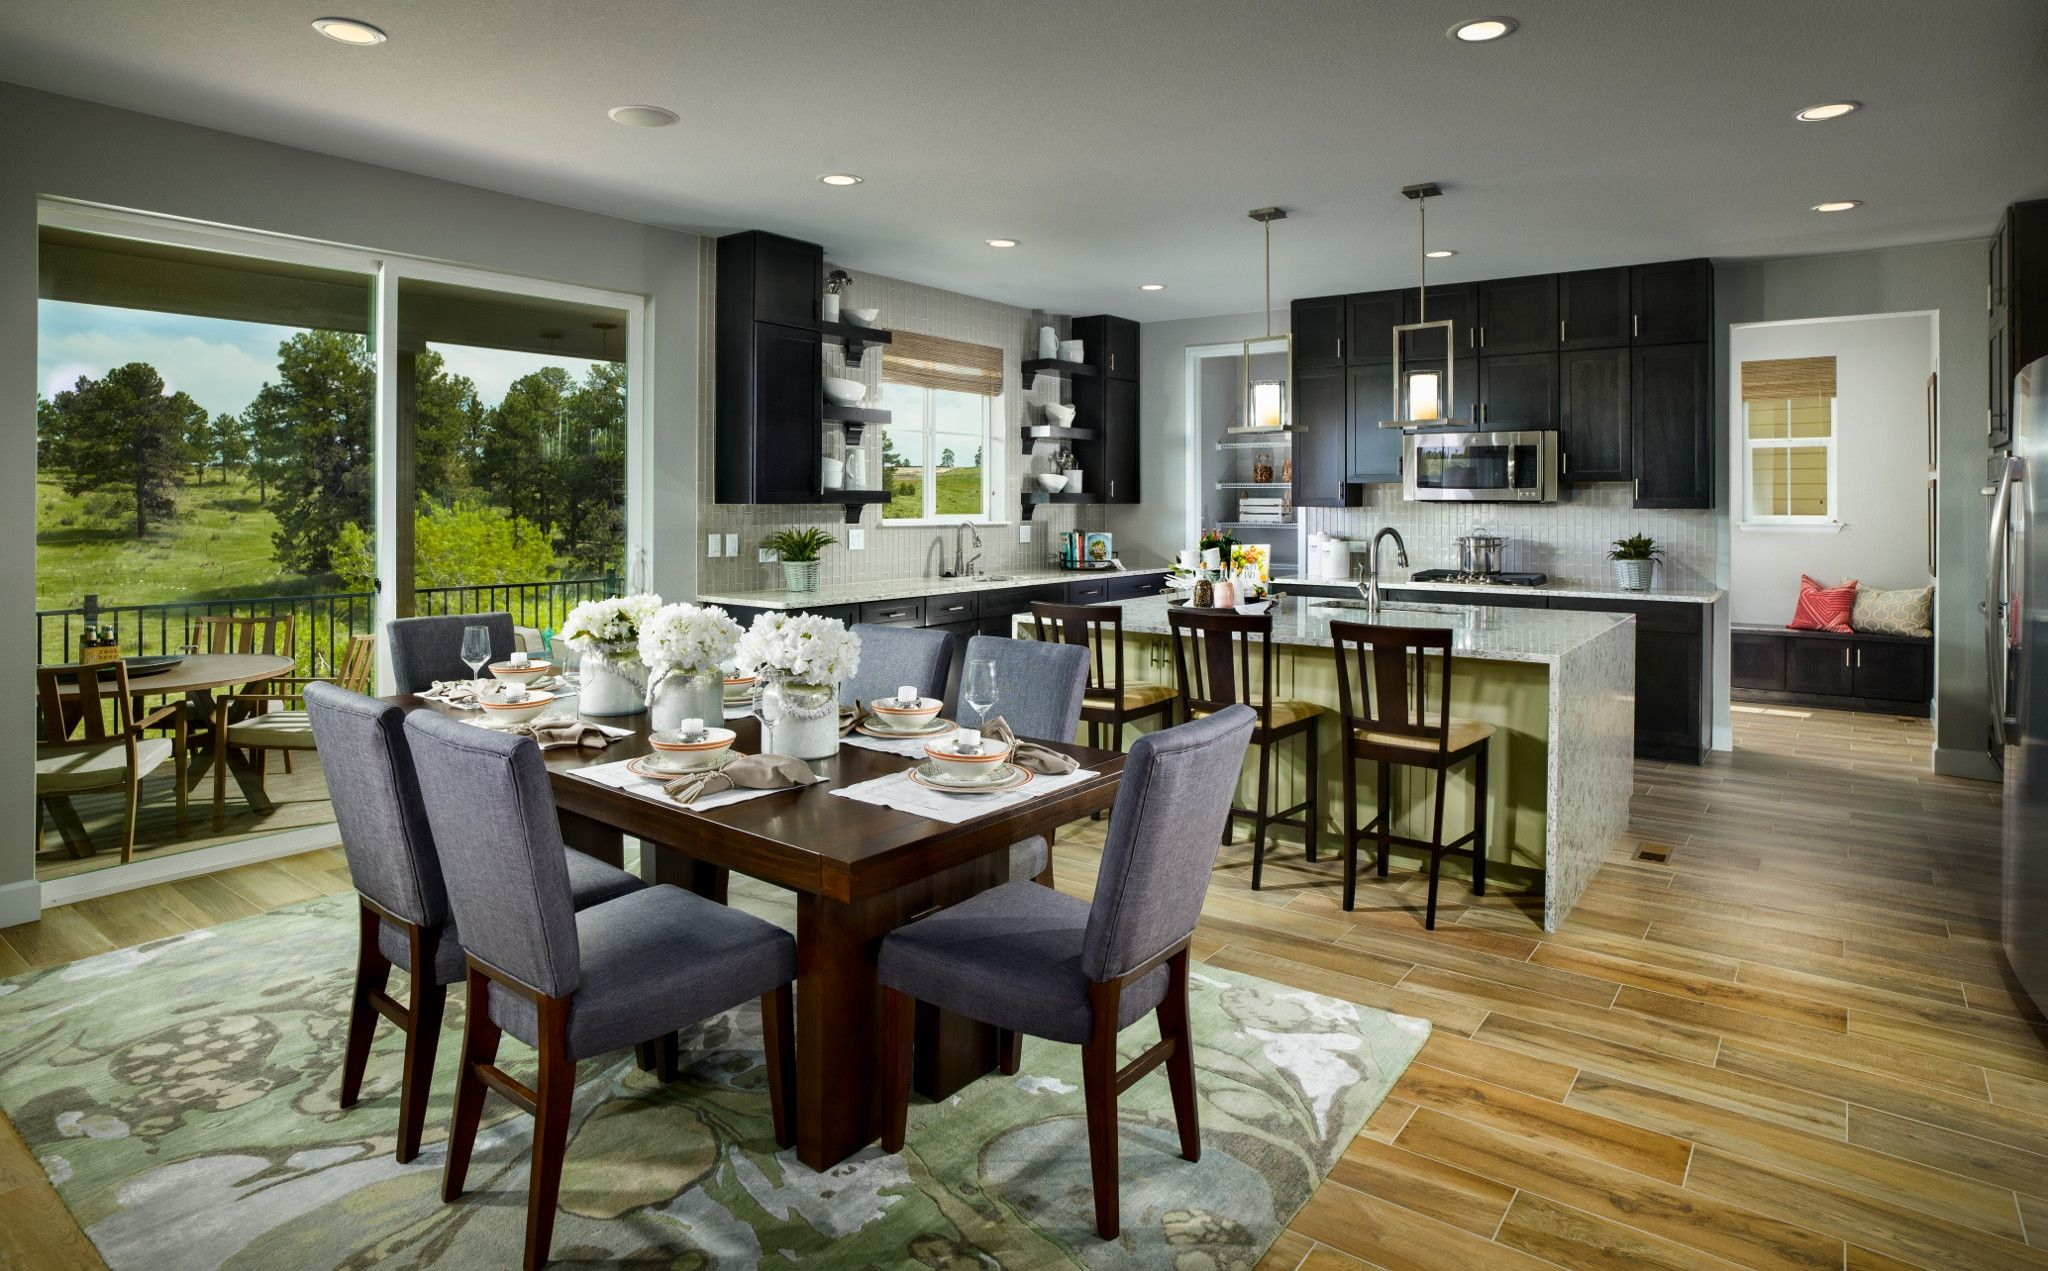 Kitchen featured in the 5215  Bristlecone By Shea Homes in Denver, CO